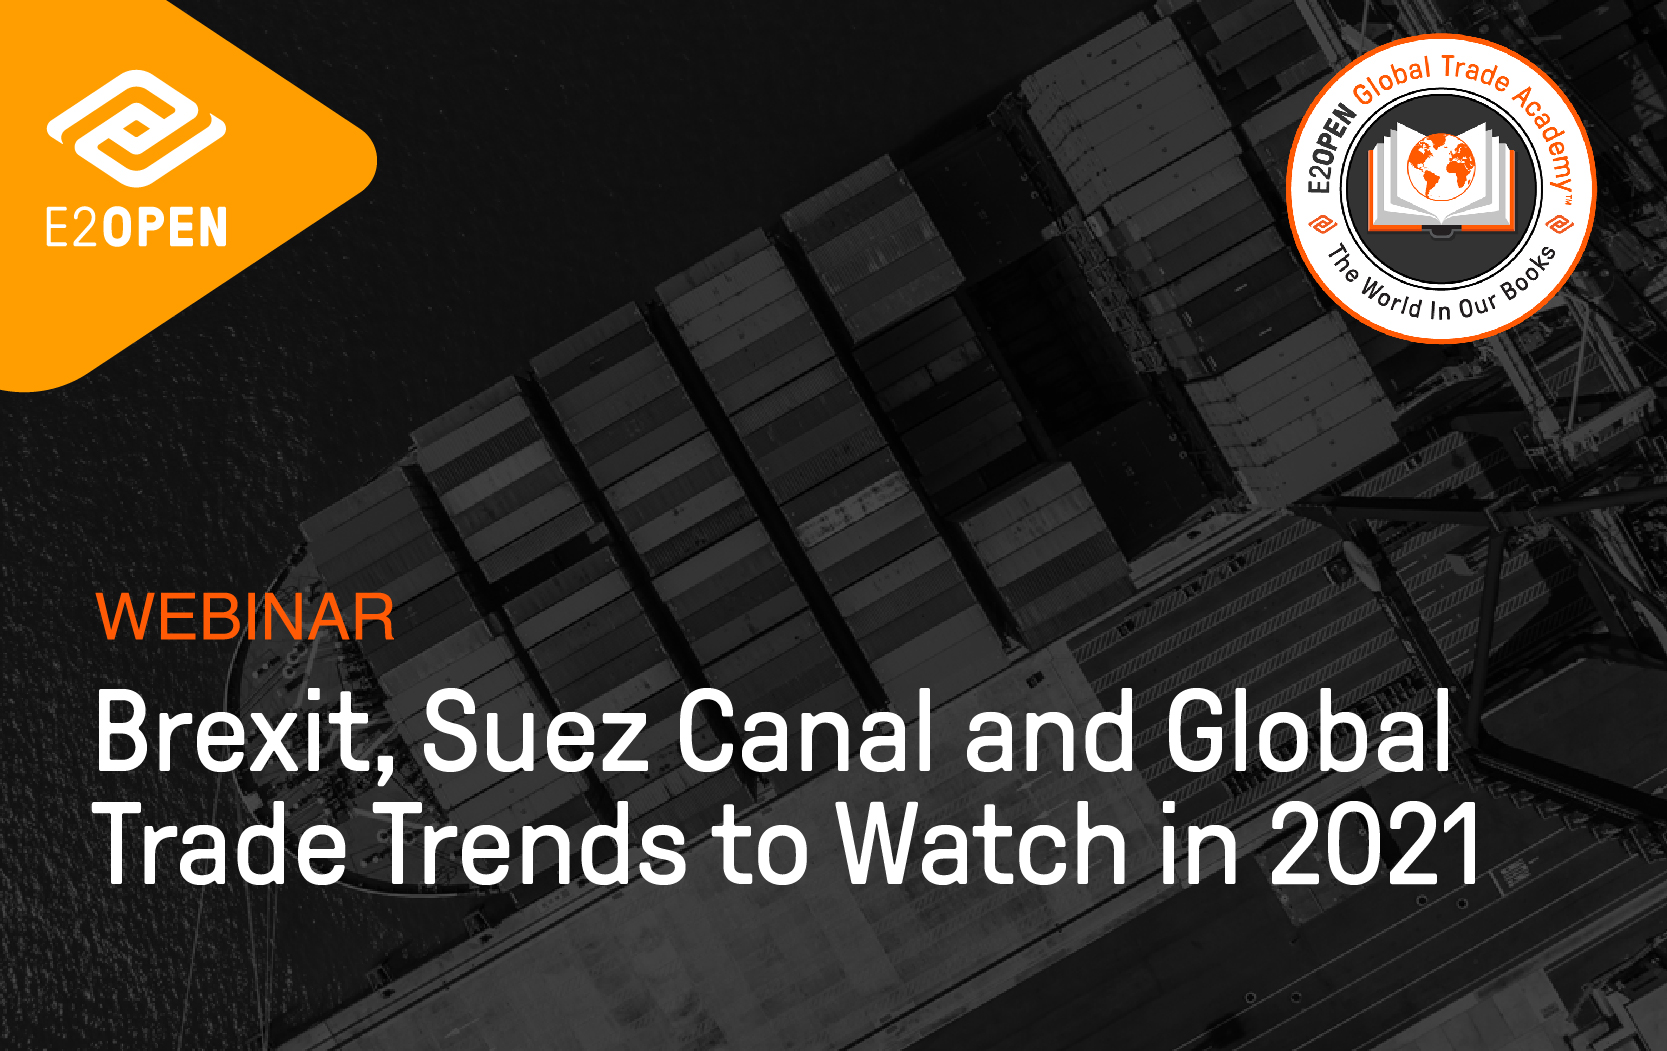 Brexit, Suez Canal and Global Trade Trends to Watch in 2021